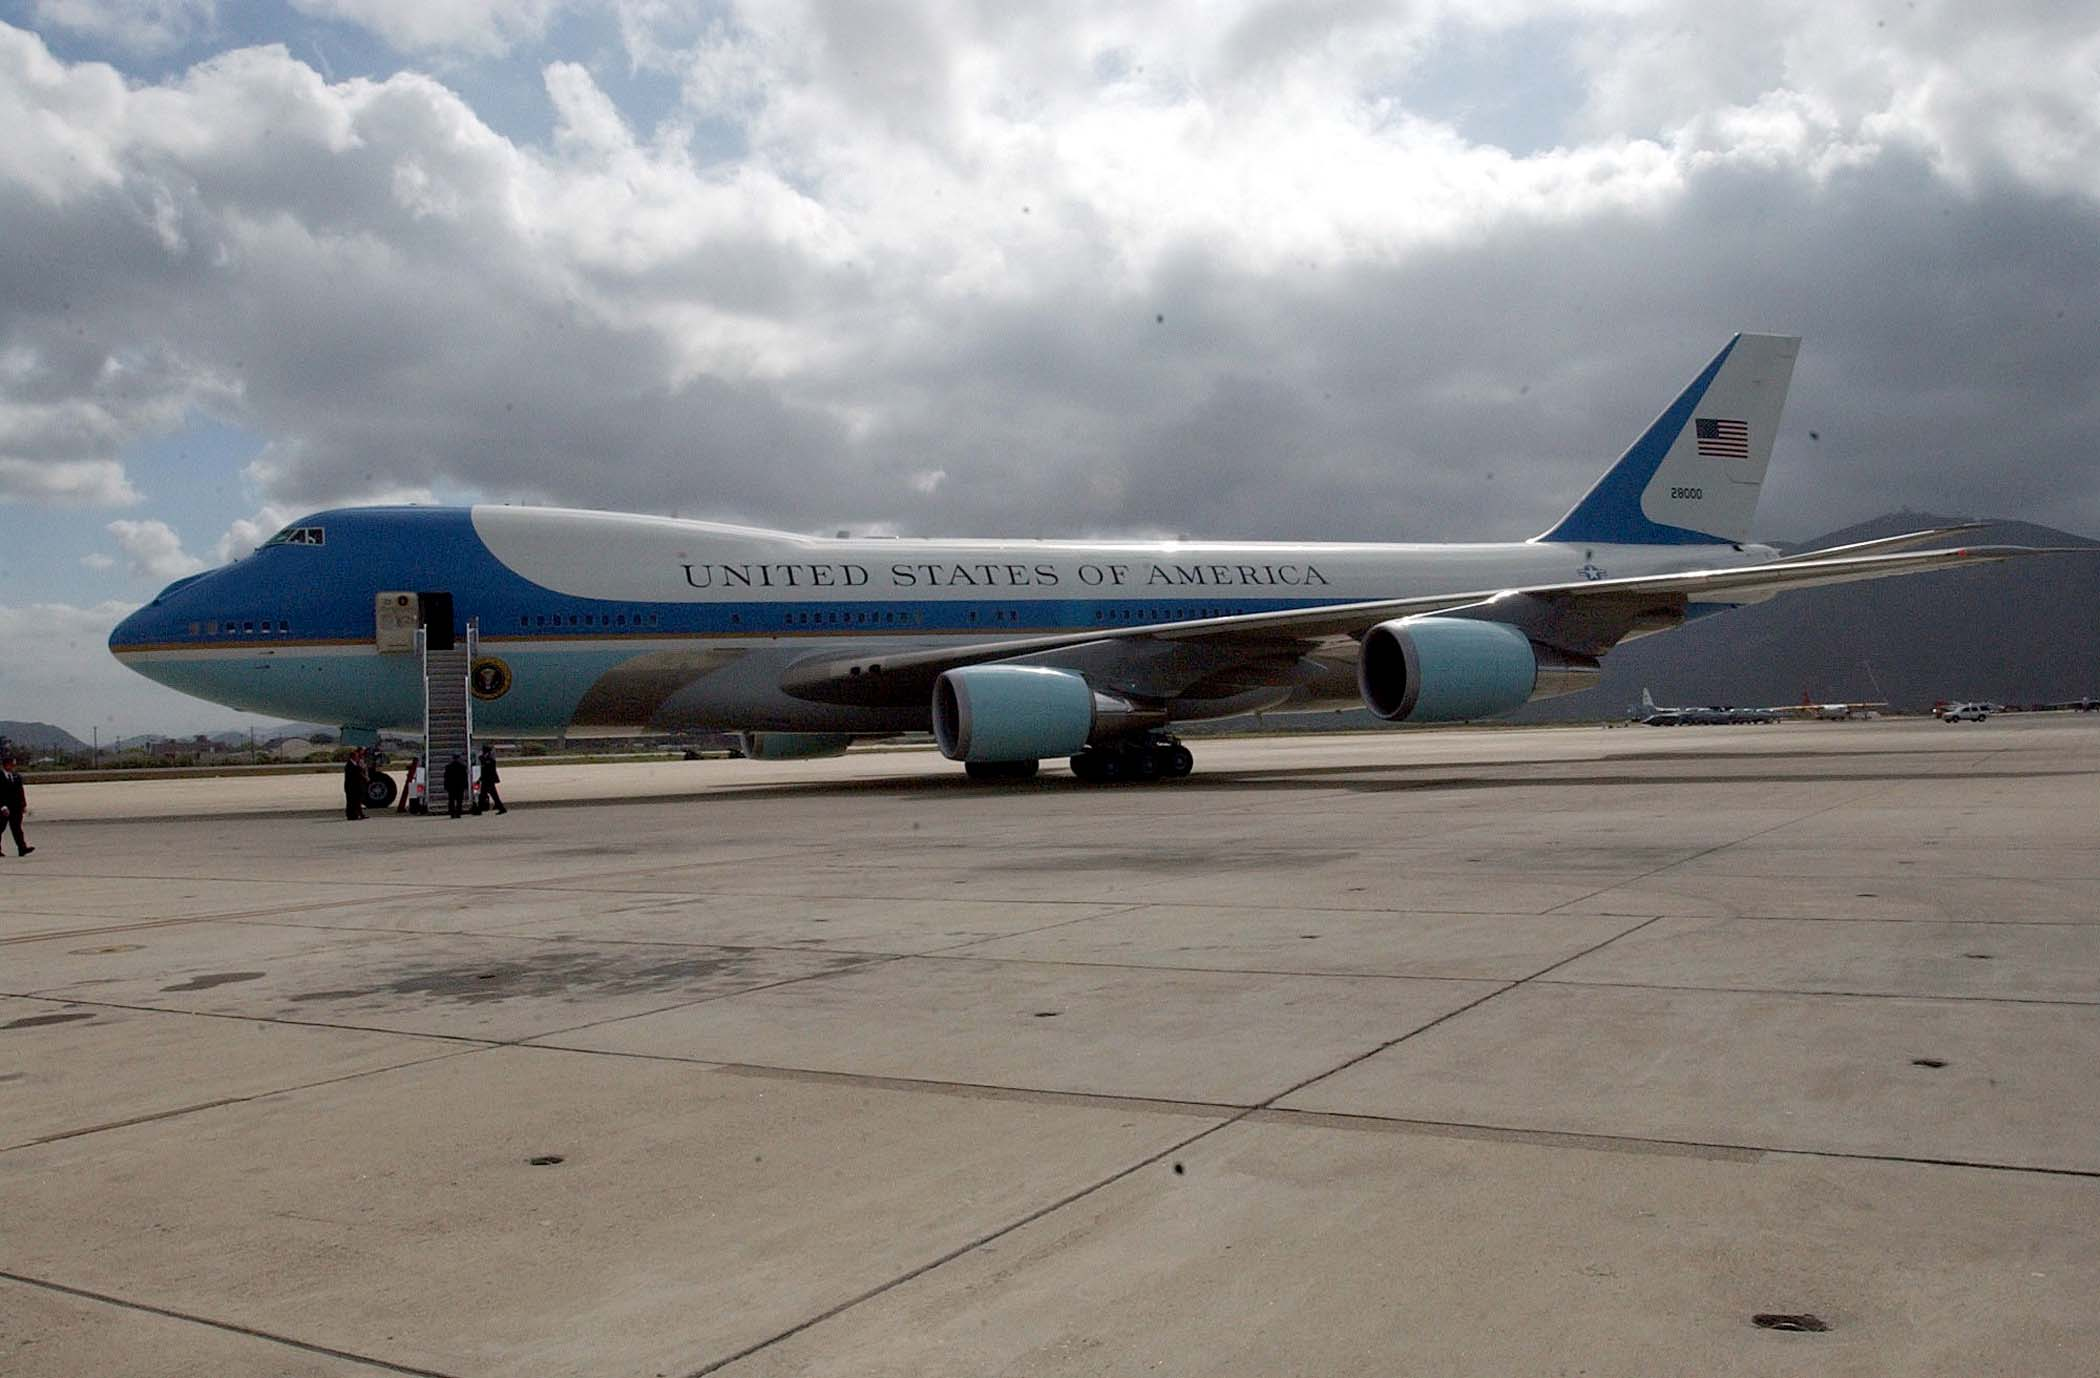 Fichier:Air Force One sits on tarmac for Reagan funeral.jpg